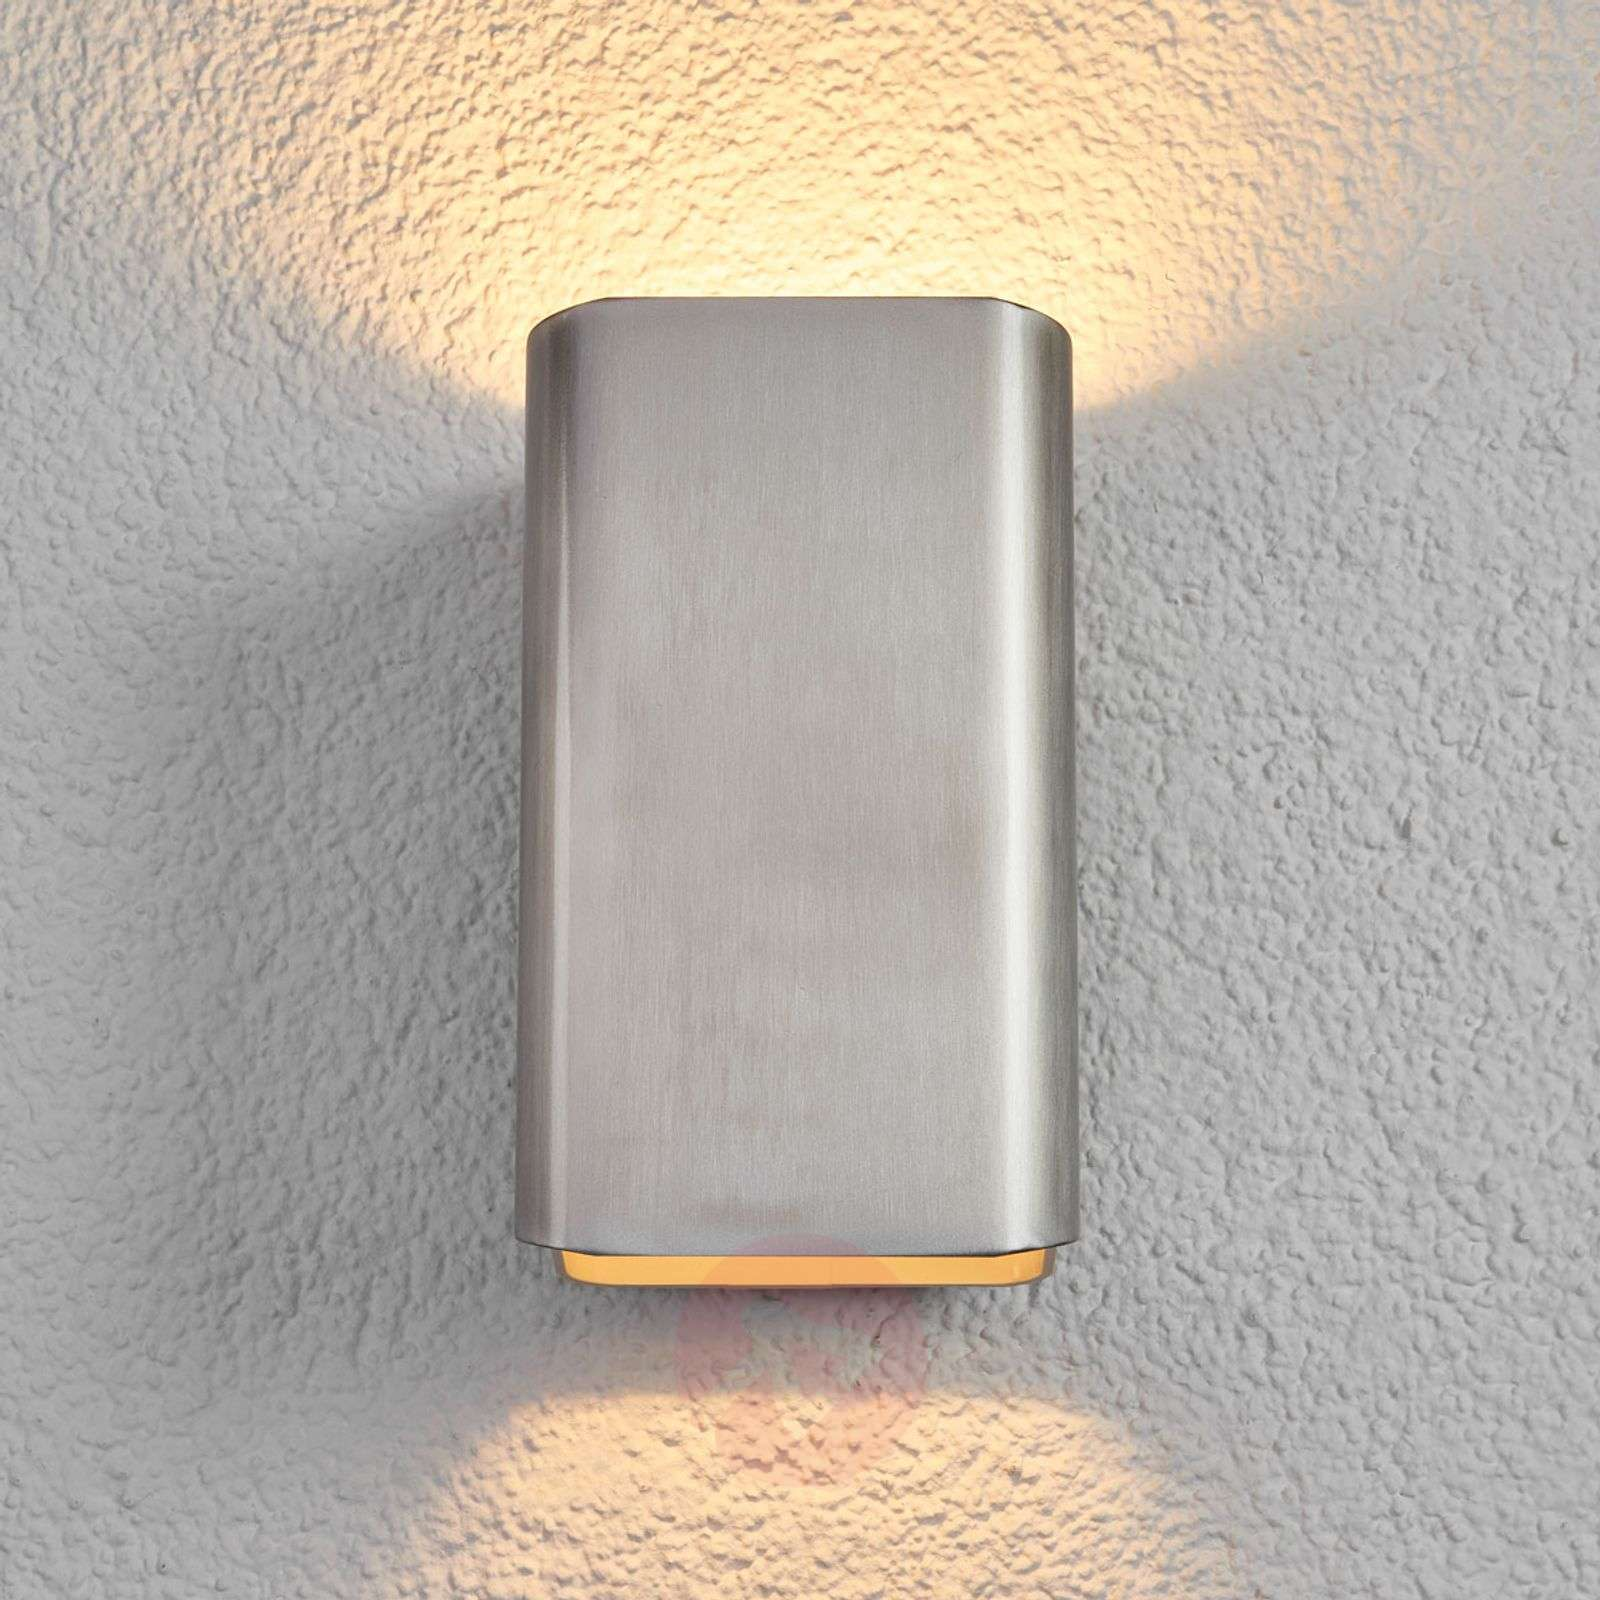 Temis LED iDual outdoor wall light, brushed nickel-9038059-01